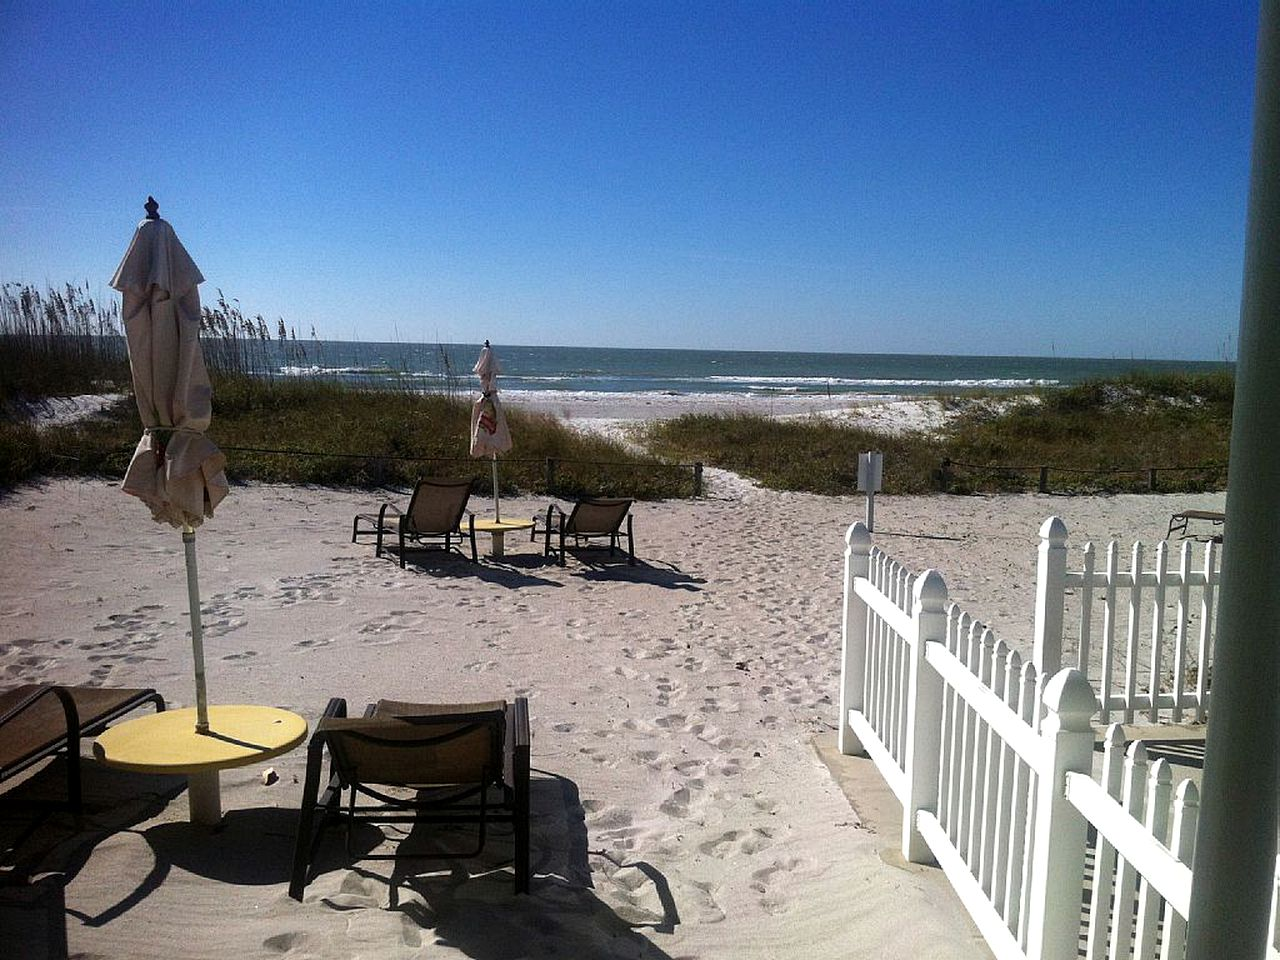 View from vacation rental on beach in Florida overlooking sand dunes and the water.